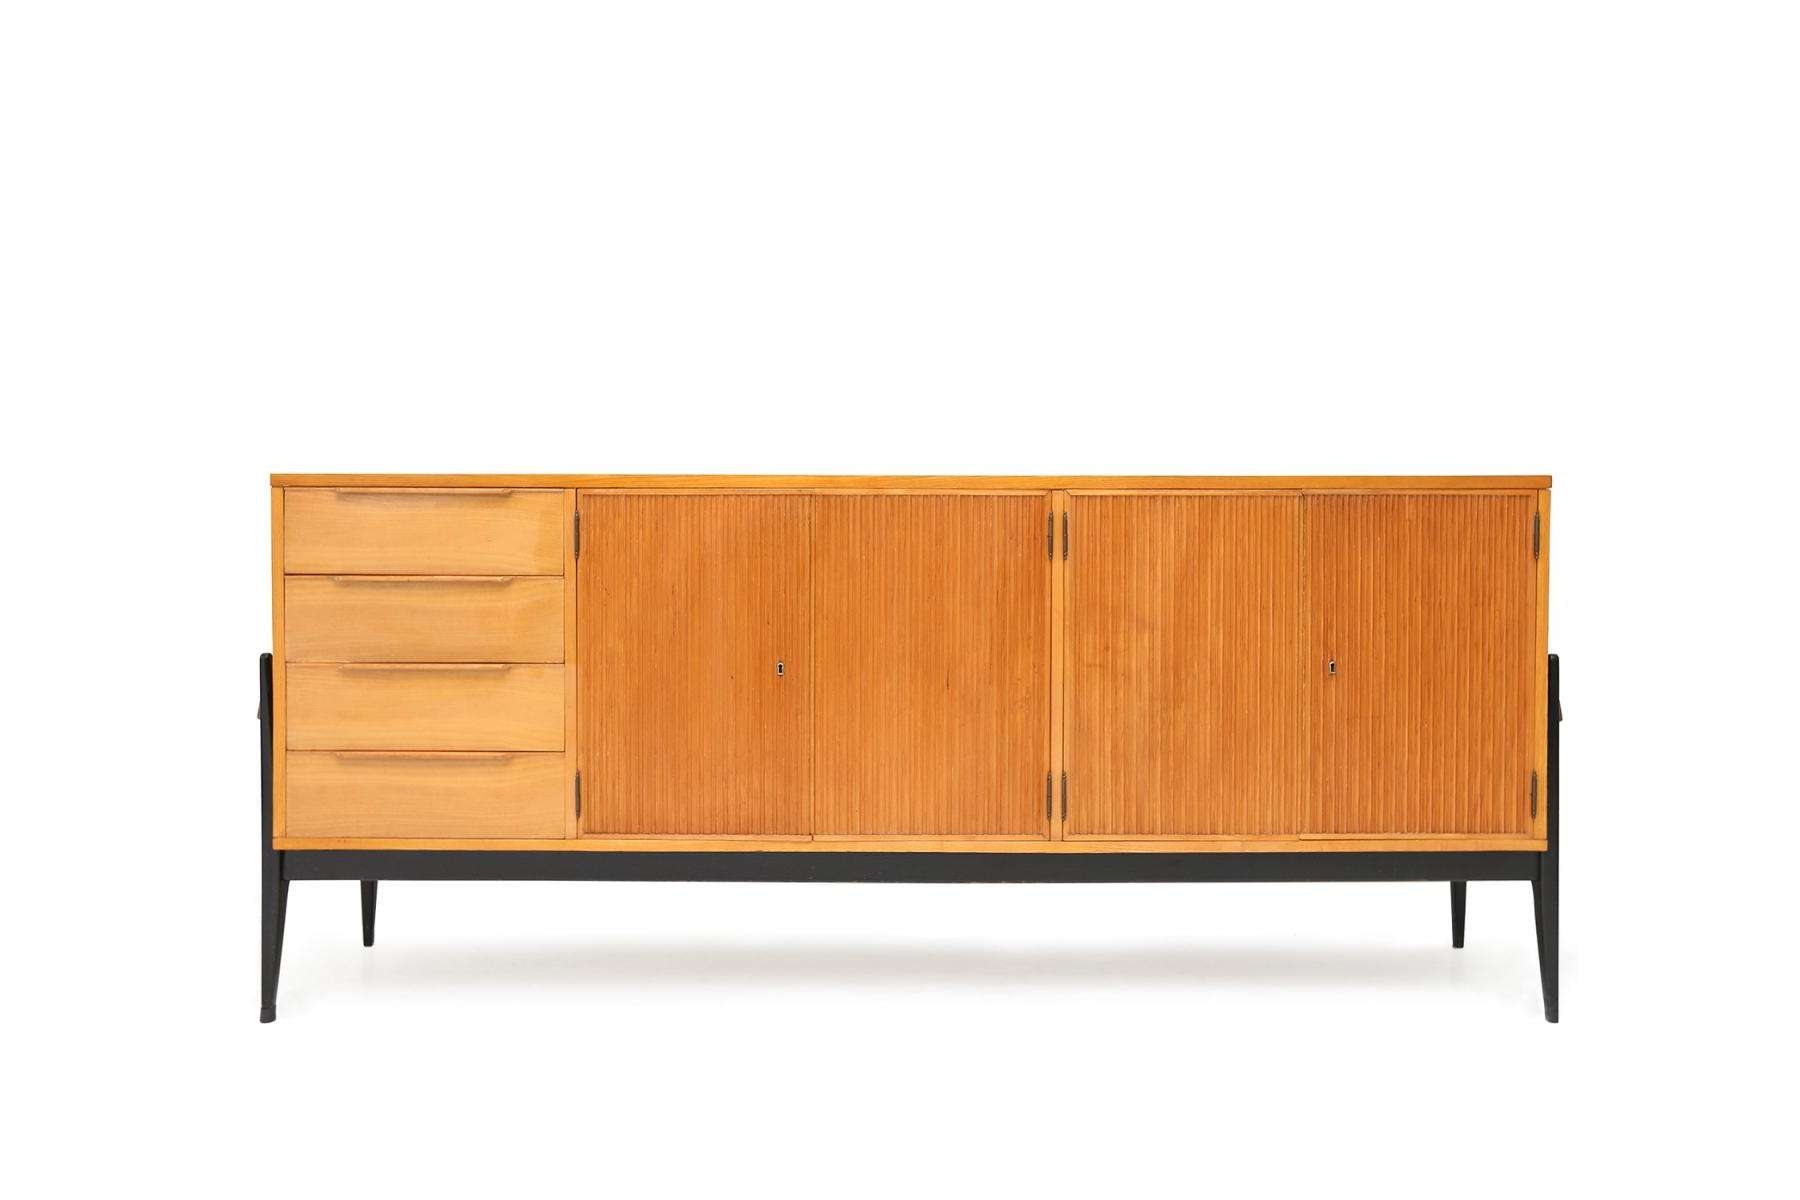 Belgian Wooden Sideboard For Sale At Pamono Throughout Wooden Sideboards (View 20 of 20)